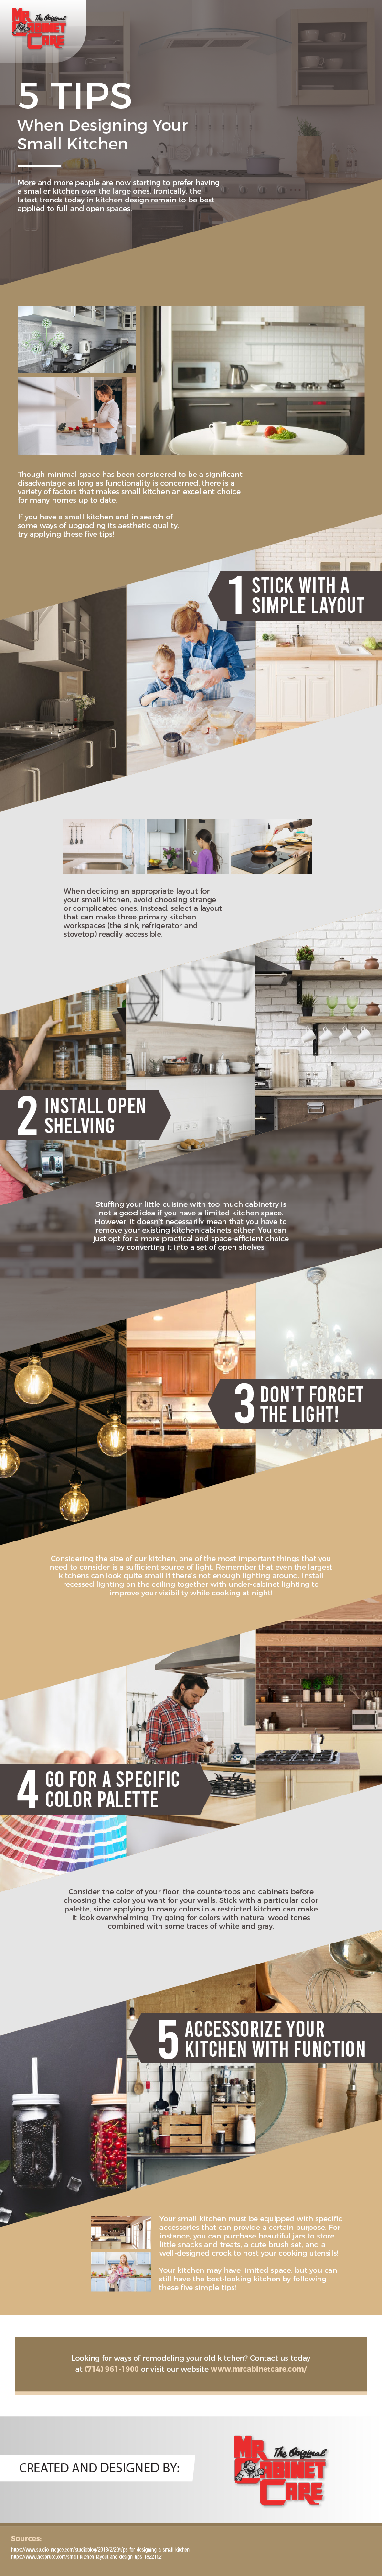 5 Tips When Designing Your Small Kitchen – Infographic